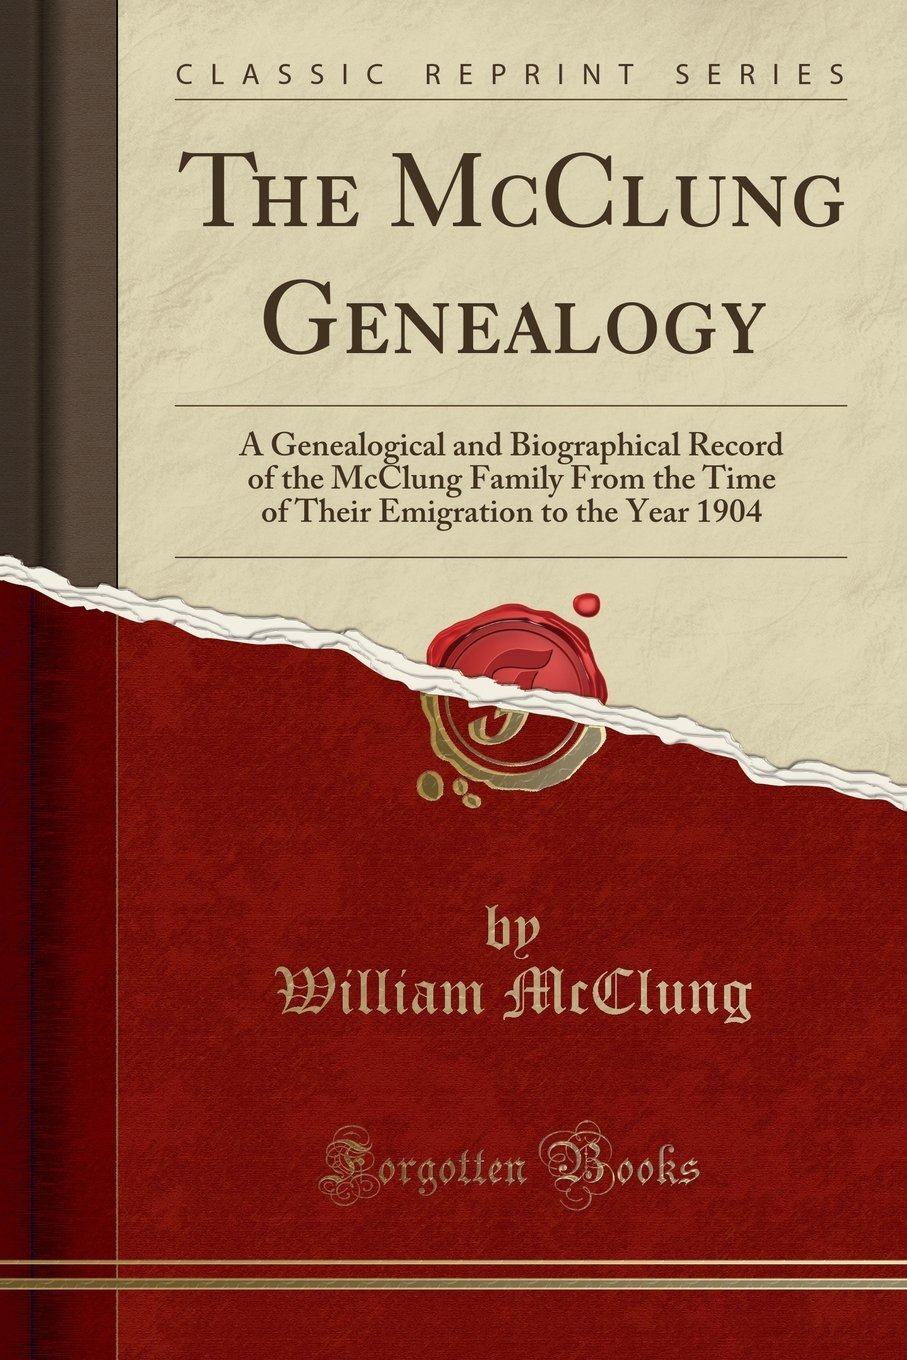 The McClung Genealogy: A Genealogical and Biographical Record of the McClung Family From the Time of Their Emigration to the Year 1904 (Classic Reprint) pdf epub